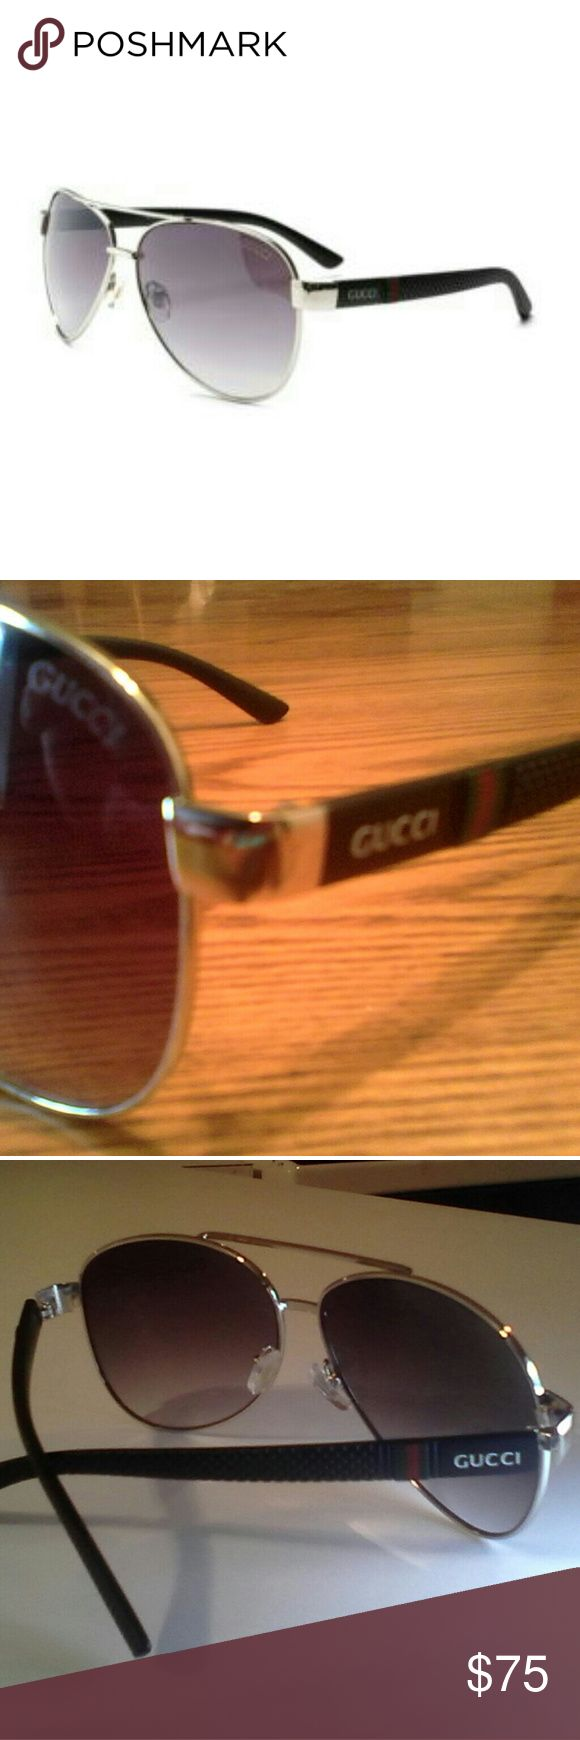 Gucci Aviator Sunglasses Gucci/Italy Unisex Aviator Polarized Sunglasses. Purchased from Sunglasshut inside Macy's. Worn very rarely, in brand new condition, not a scratch or sign of wear. I no longer have access to the leather Gucci case they came in. A while ago my sister asked me if she could have it and considering I keep all my sunglasses in my closet showcase, I said yes. However, I should have a plain sunglasses case to ship them in for safe shipping. My listing price accounts for not…